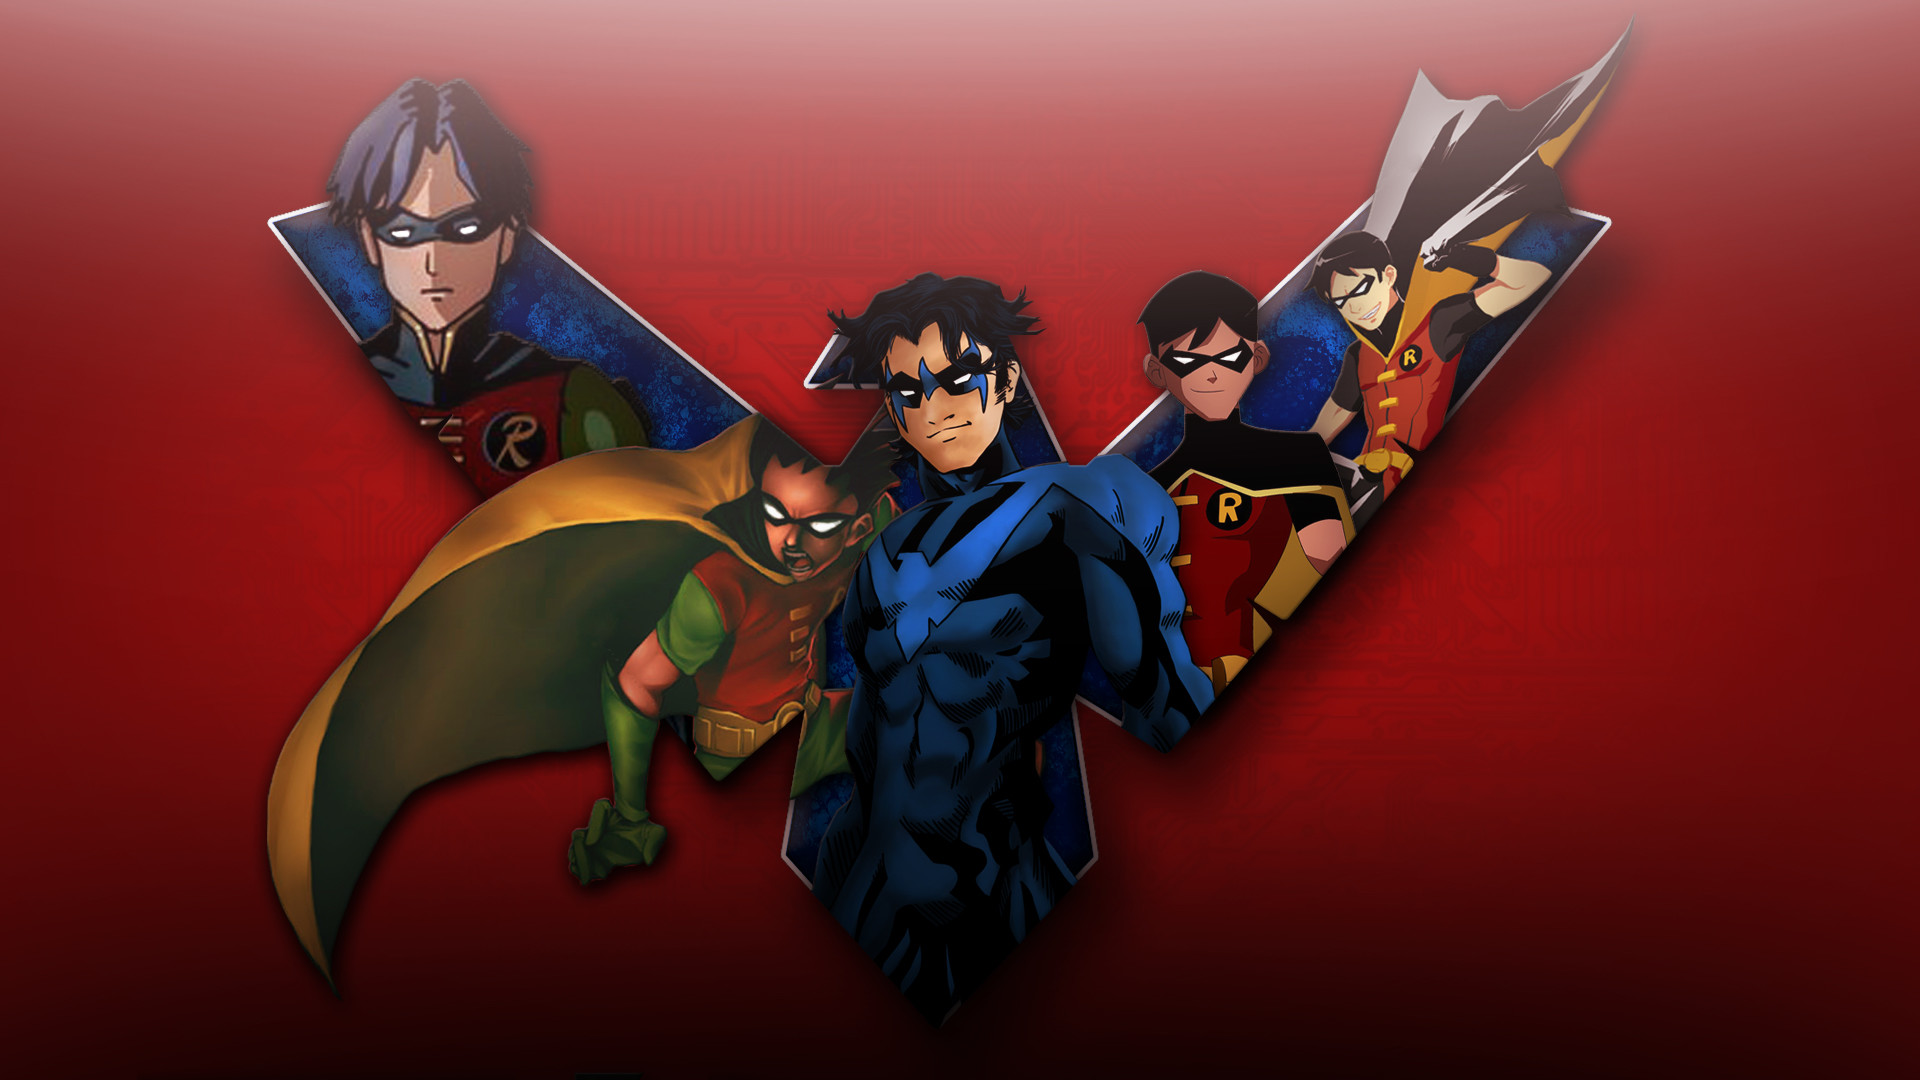 Res: 1920x1080, Nightwing Young Justice, city, red, arkham, robin,  HD .